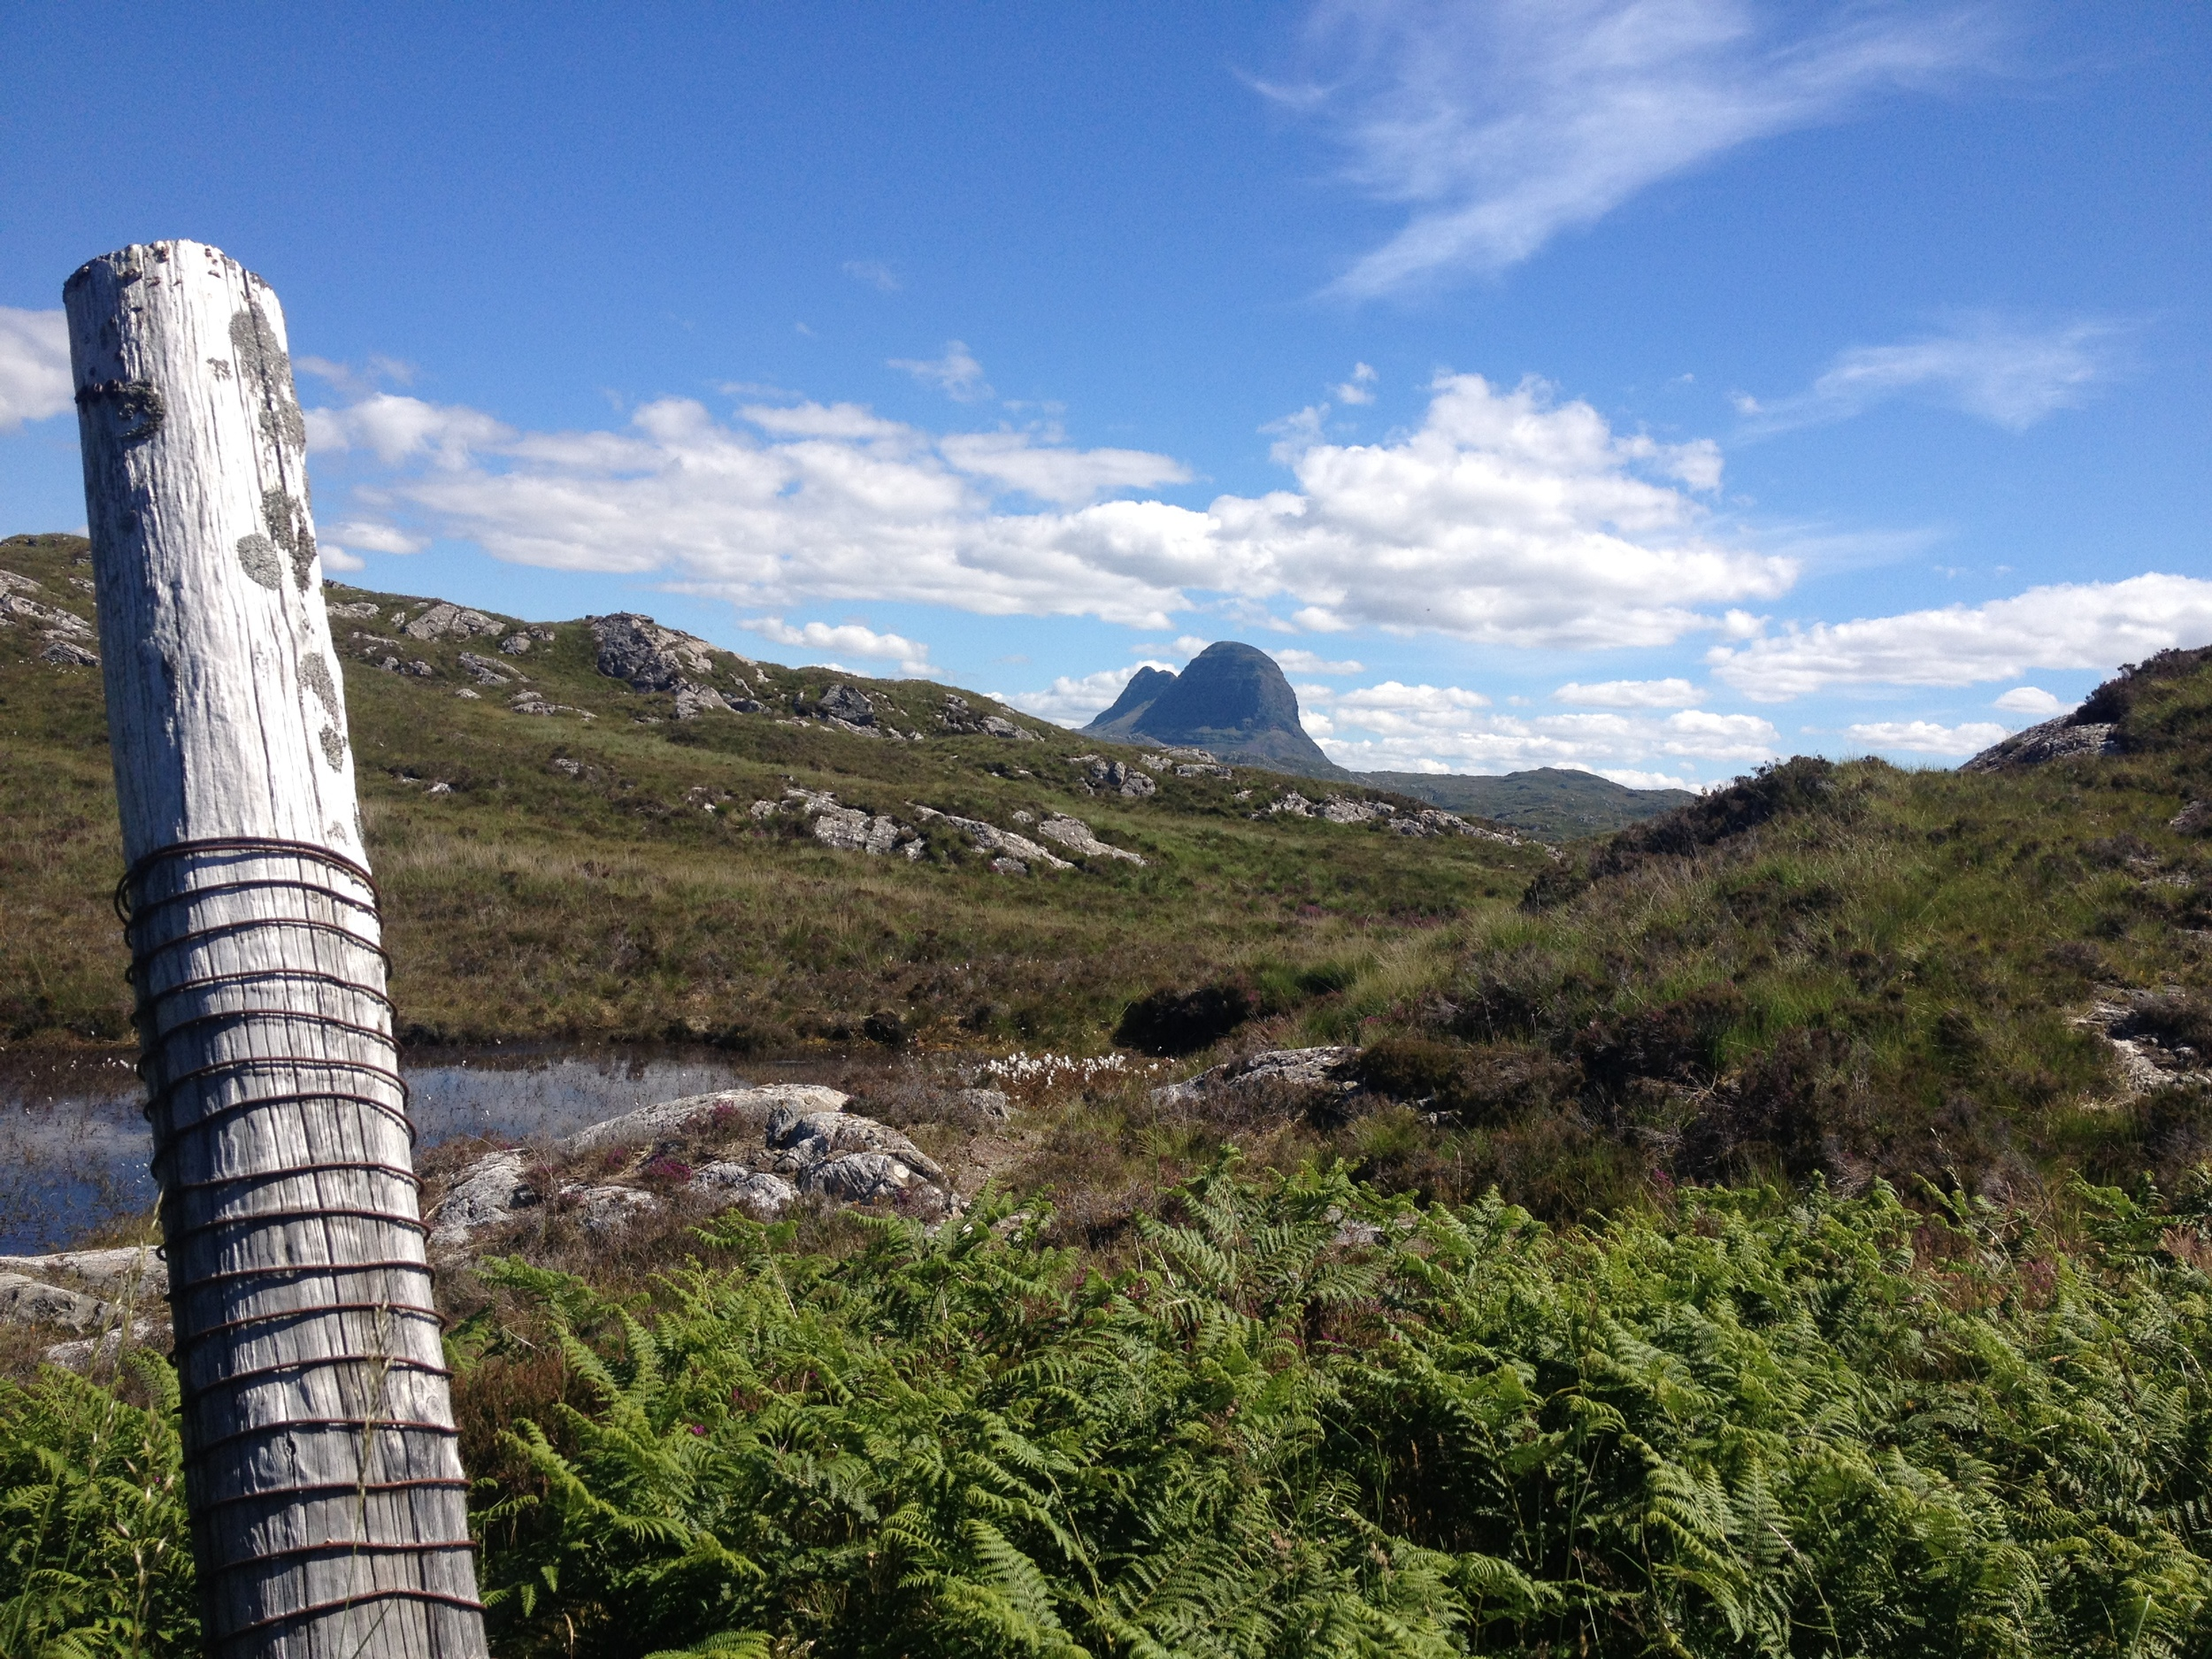 Suilven, a long climb ahead.